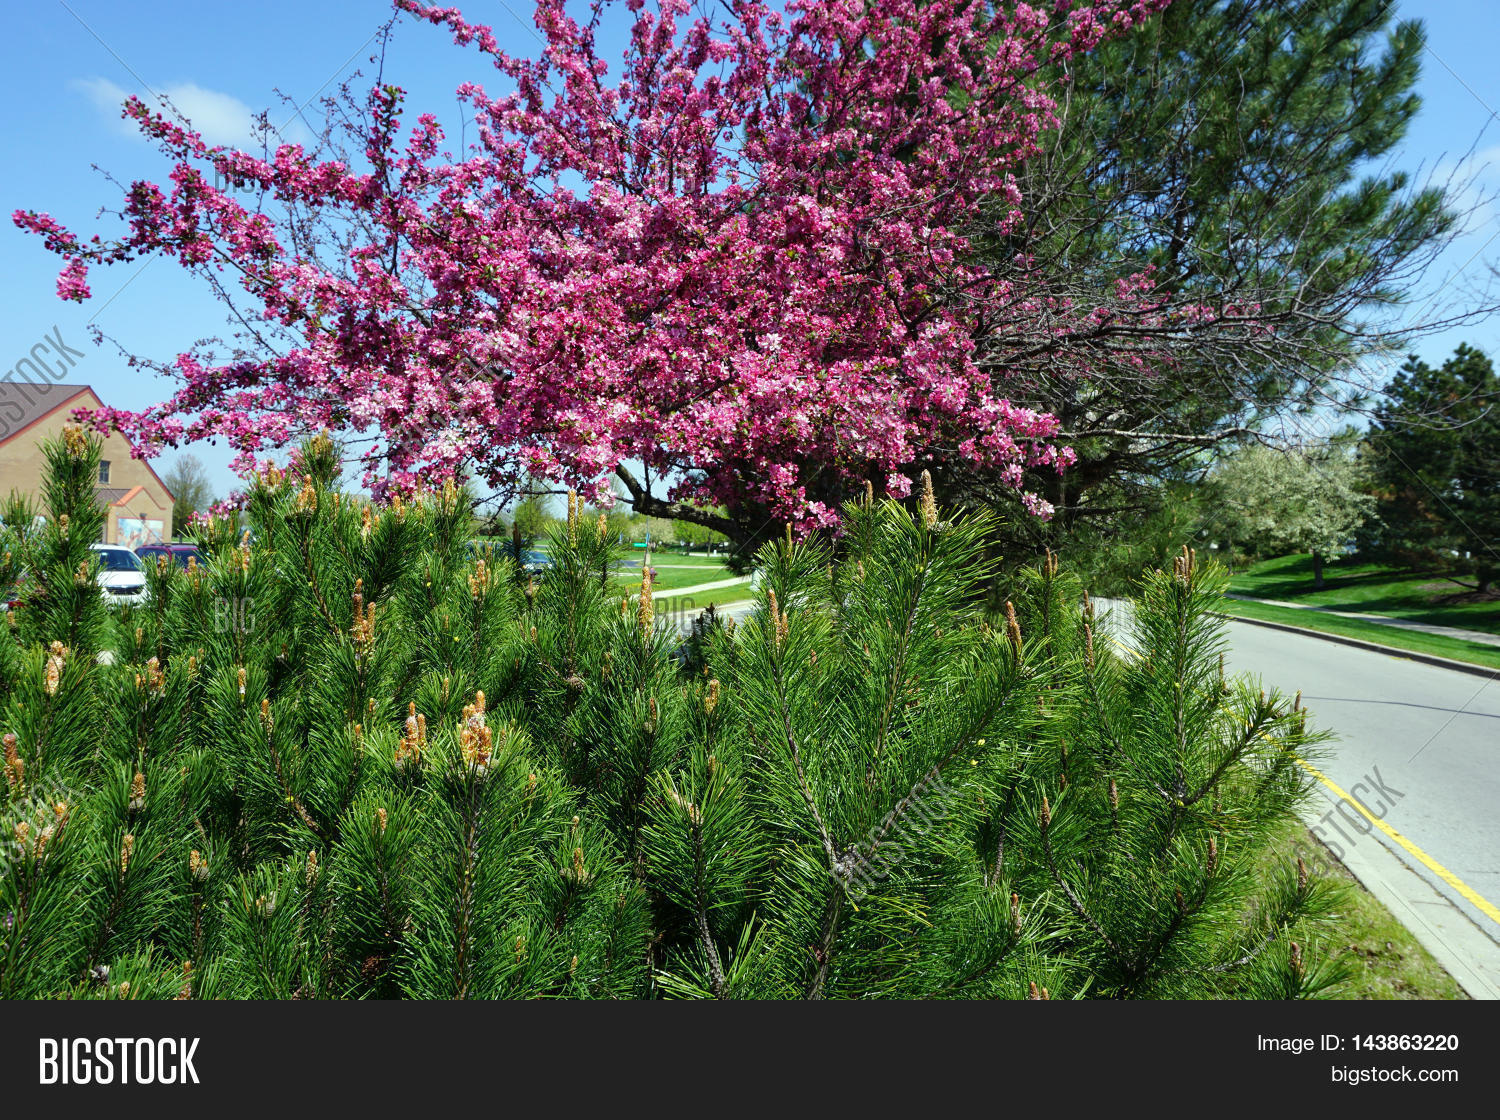 Red pine tree pinus image photo free trial bigstock a red pine tree pinus resinosa grows next to a flowering crab apple tree mightylinksfo